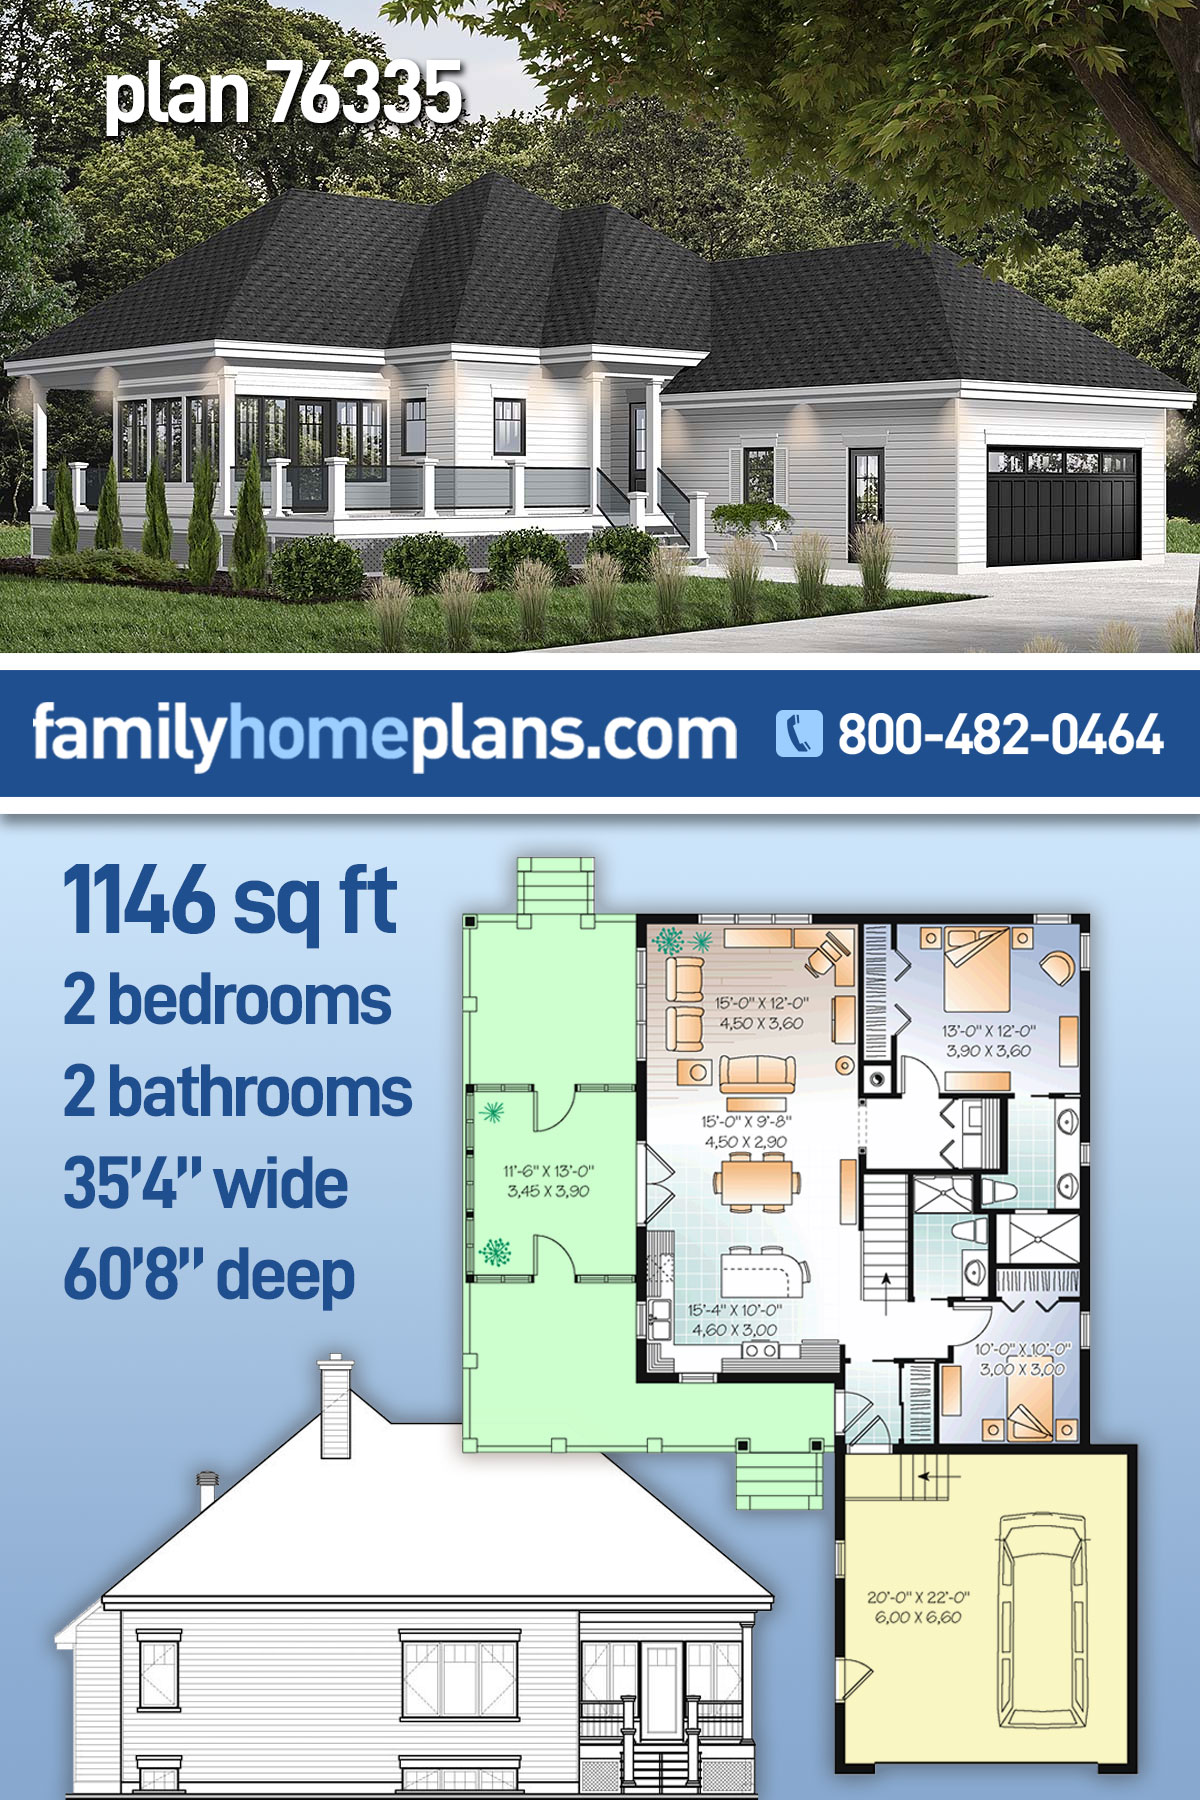 Cottage House Plan 76335 with 2 Beds, 2 Baths, 2 Car Garage